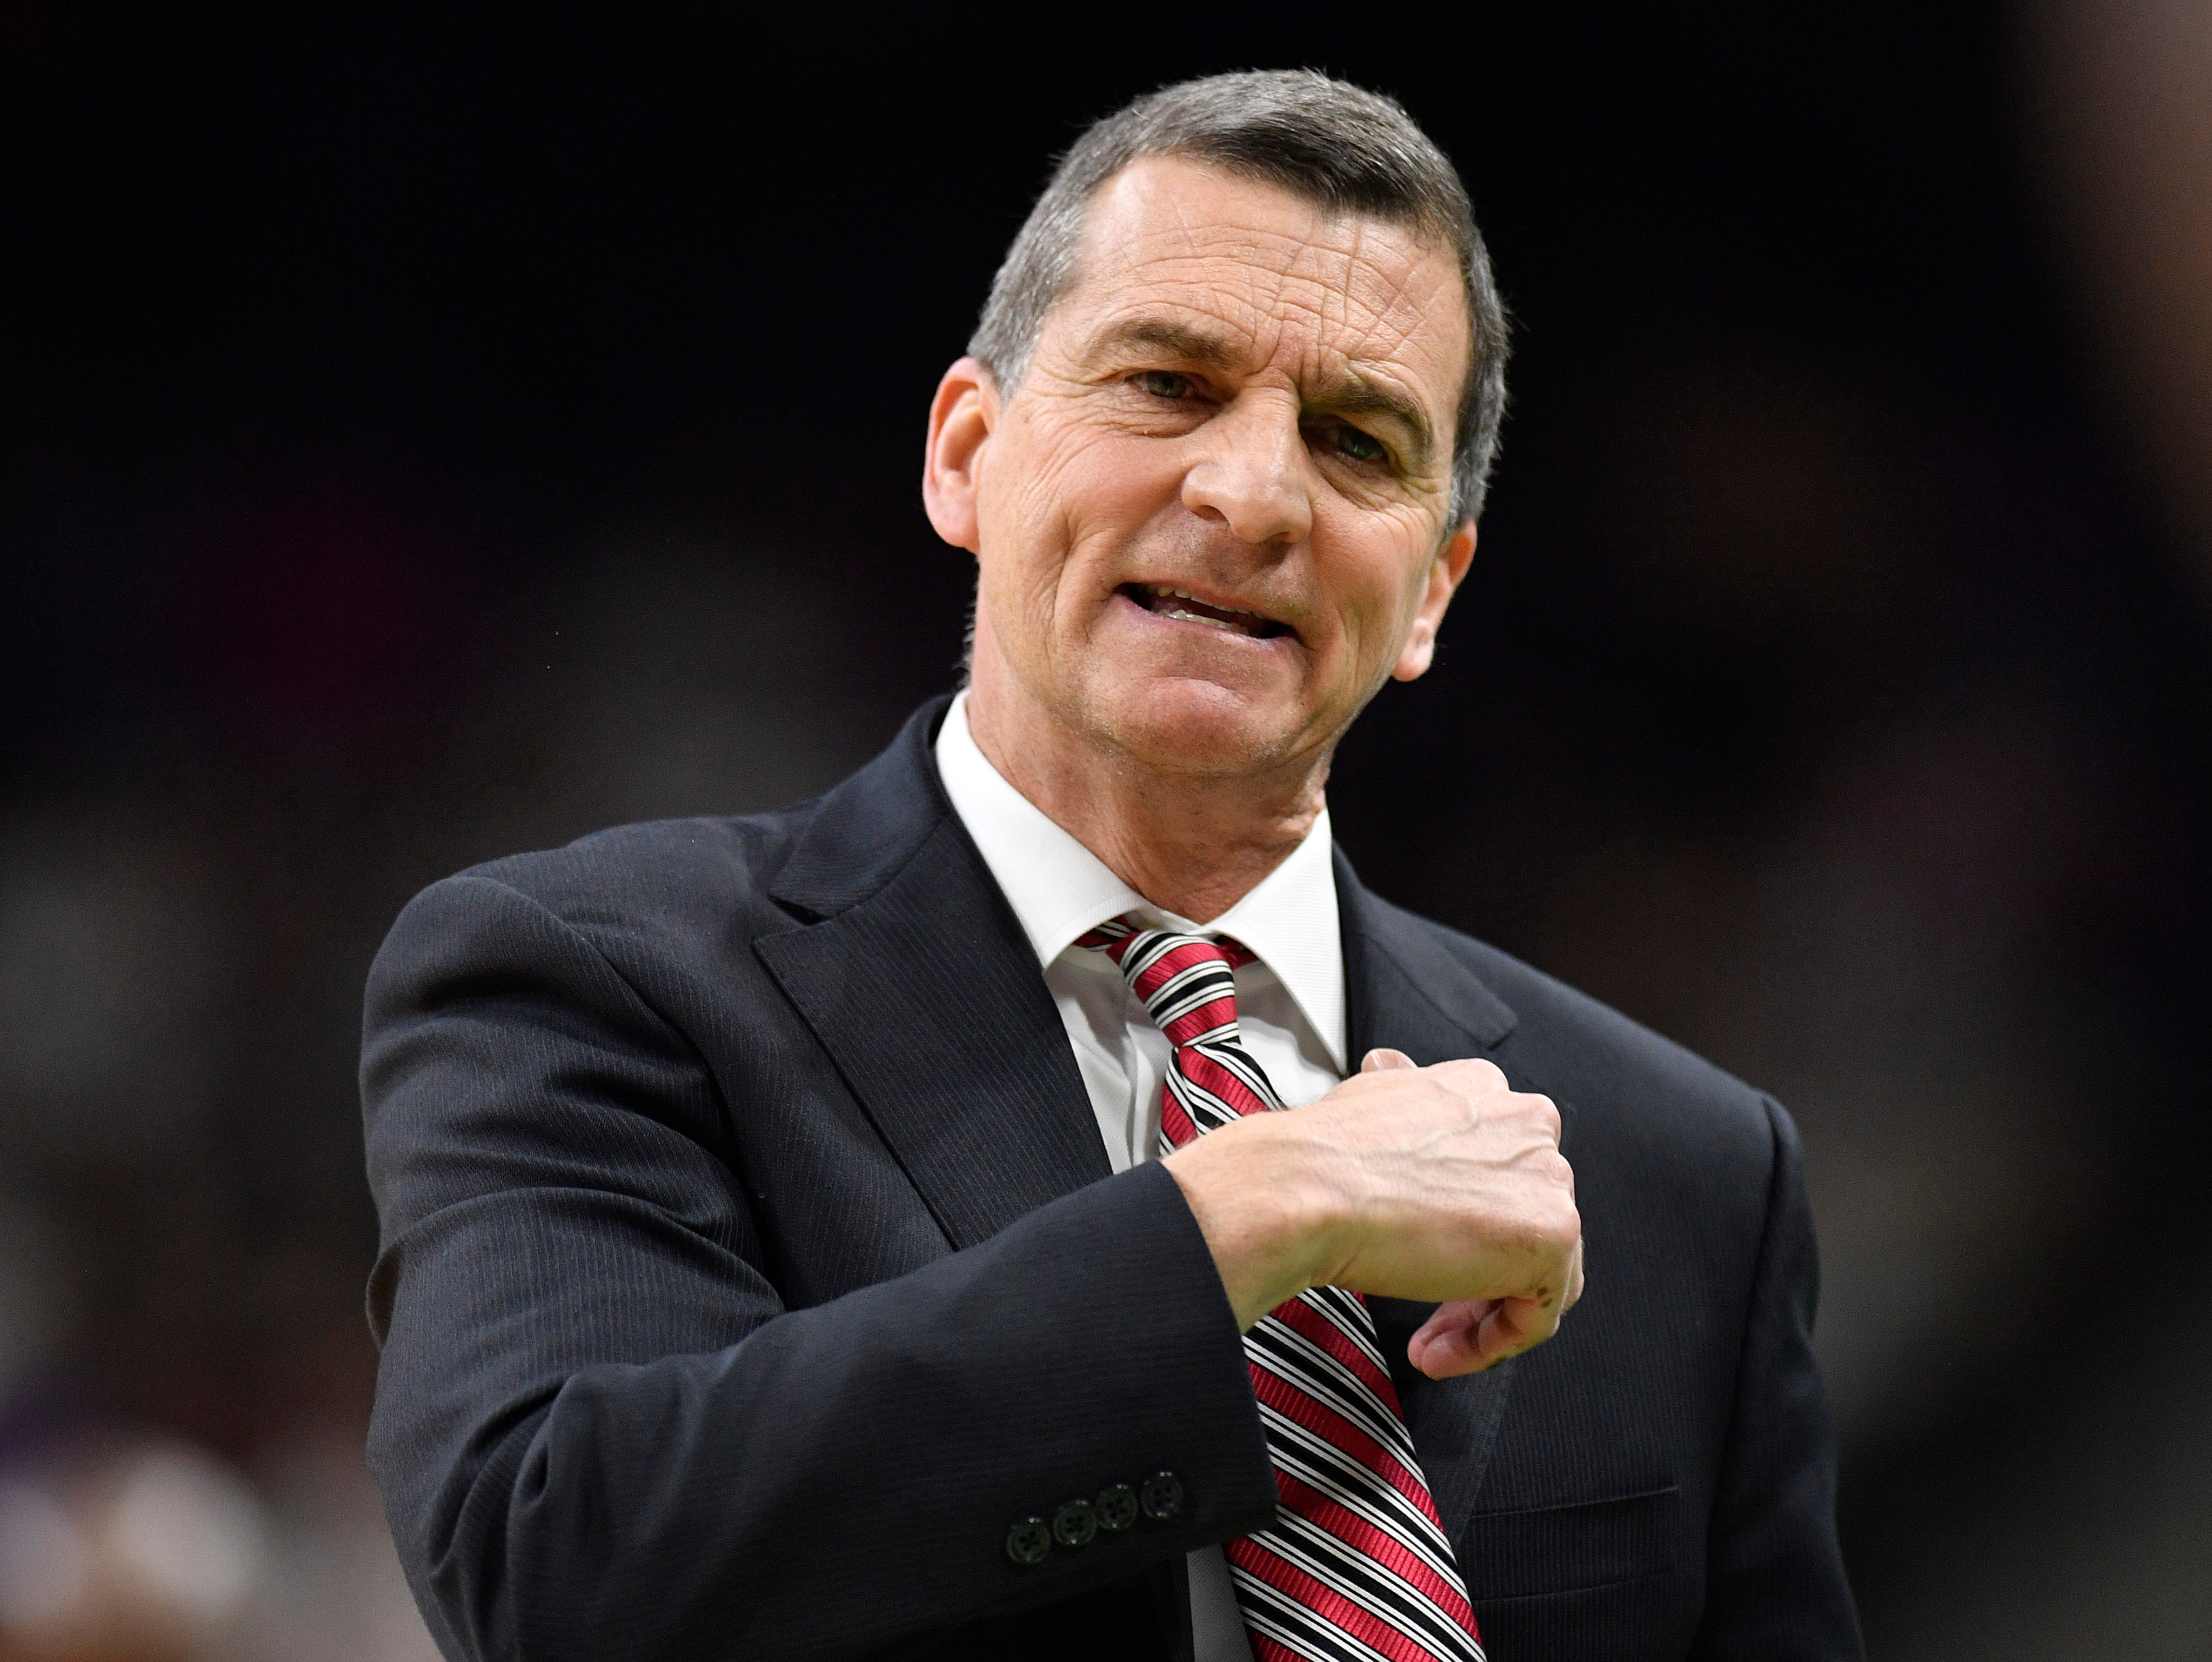 Maryland head coach Mark Turgeon reacts during the first half of their game against Belmont in the first-round NCAA college basketball tournament game at VyStar Veterans Memorial Arena in Jacksonville, Fla., Thursday, March 21, 2019.